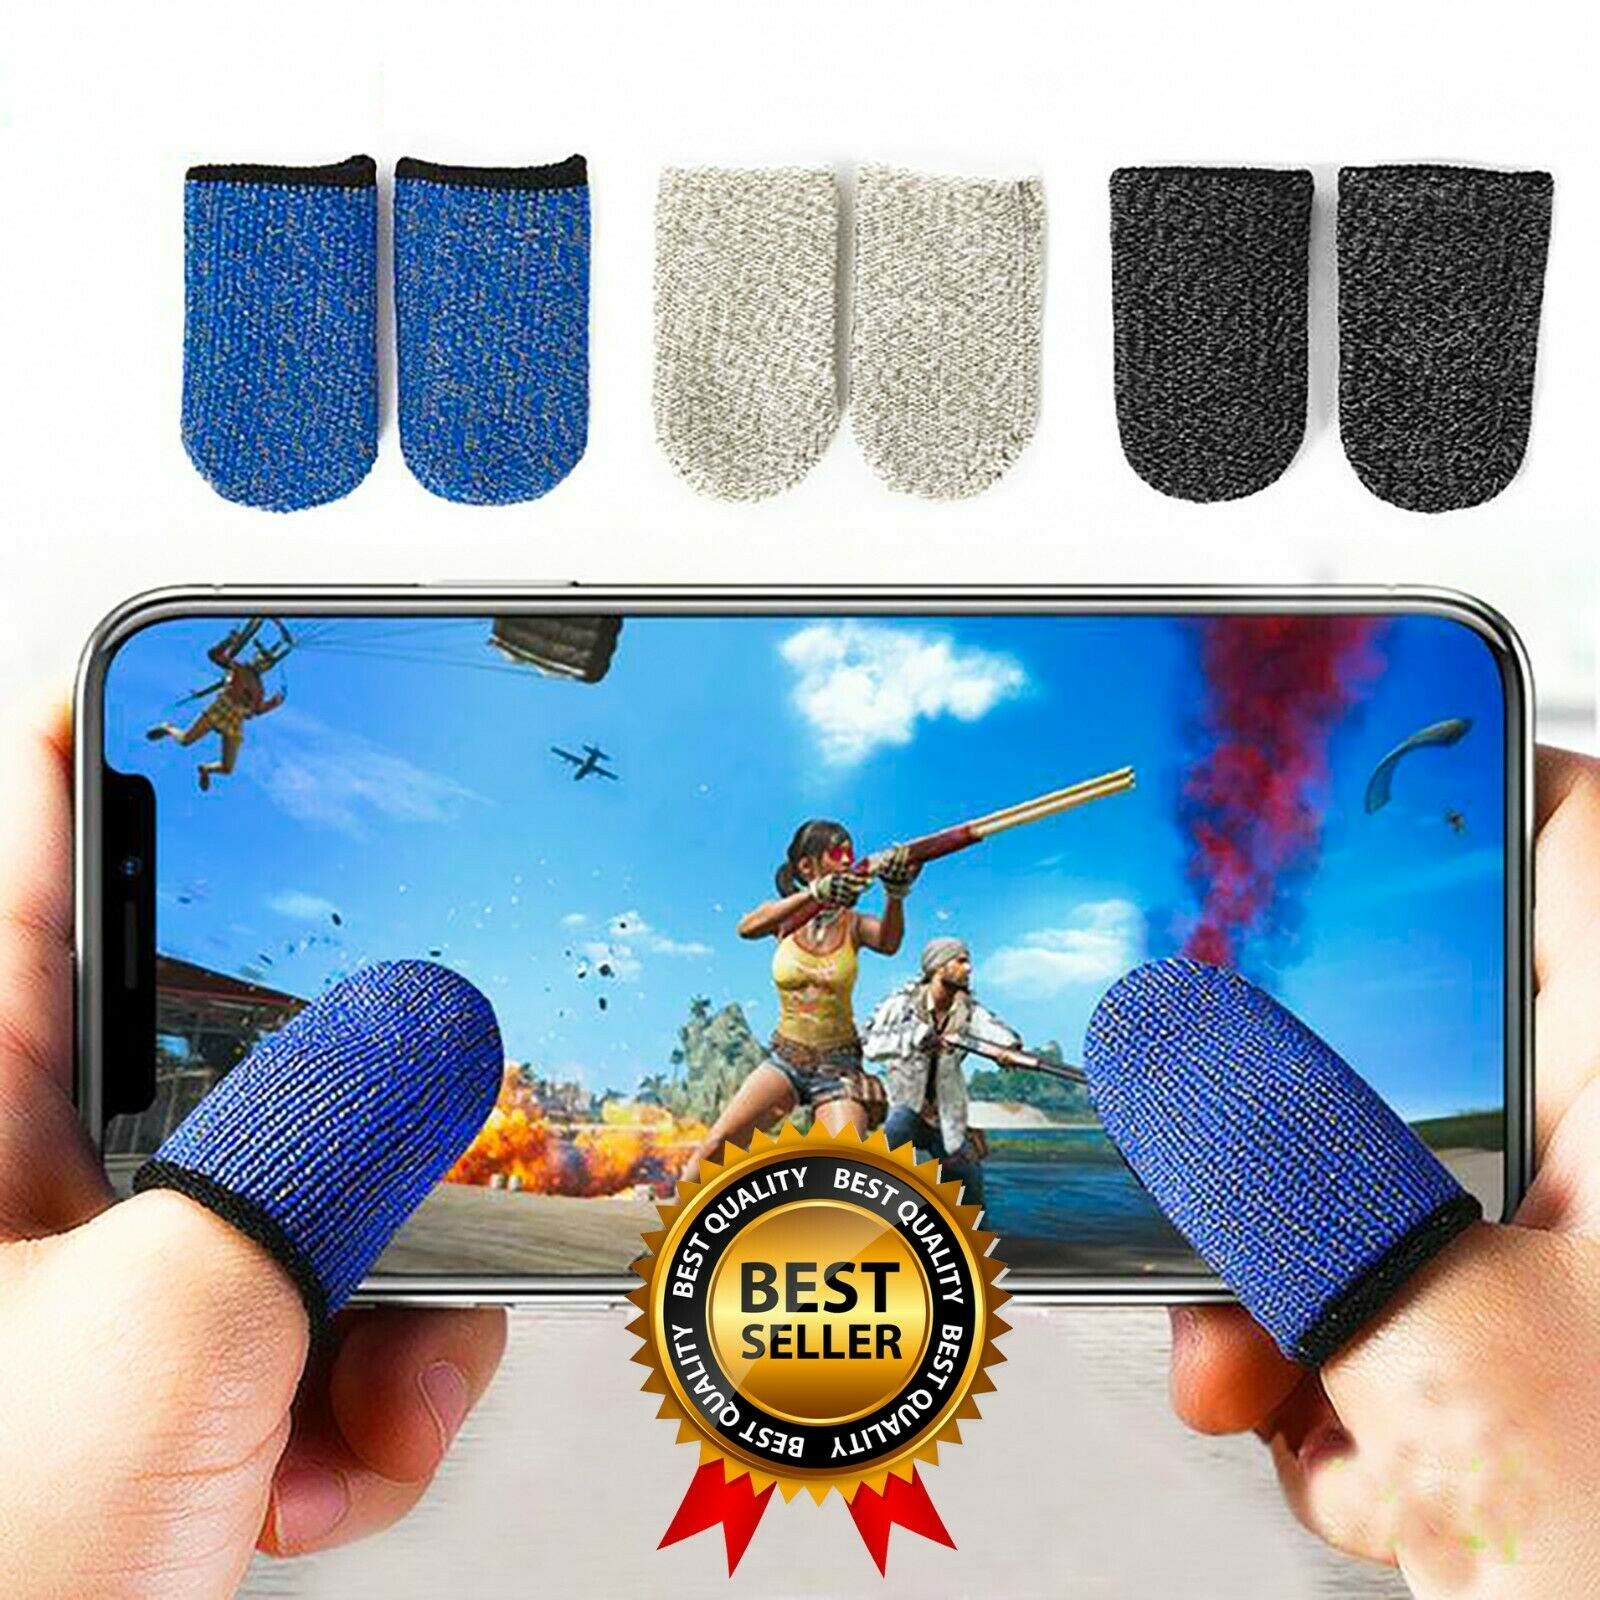 1 Pair Thumb Finger Sleeve Mobile Game Sleeve Touch Screen Gaming Gloves PUBG